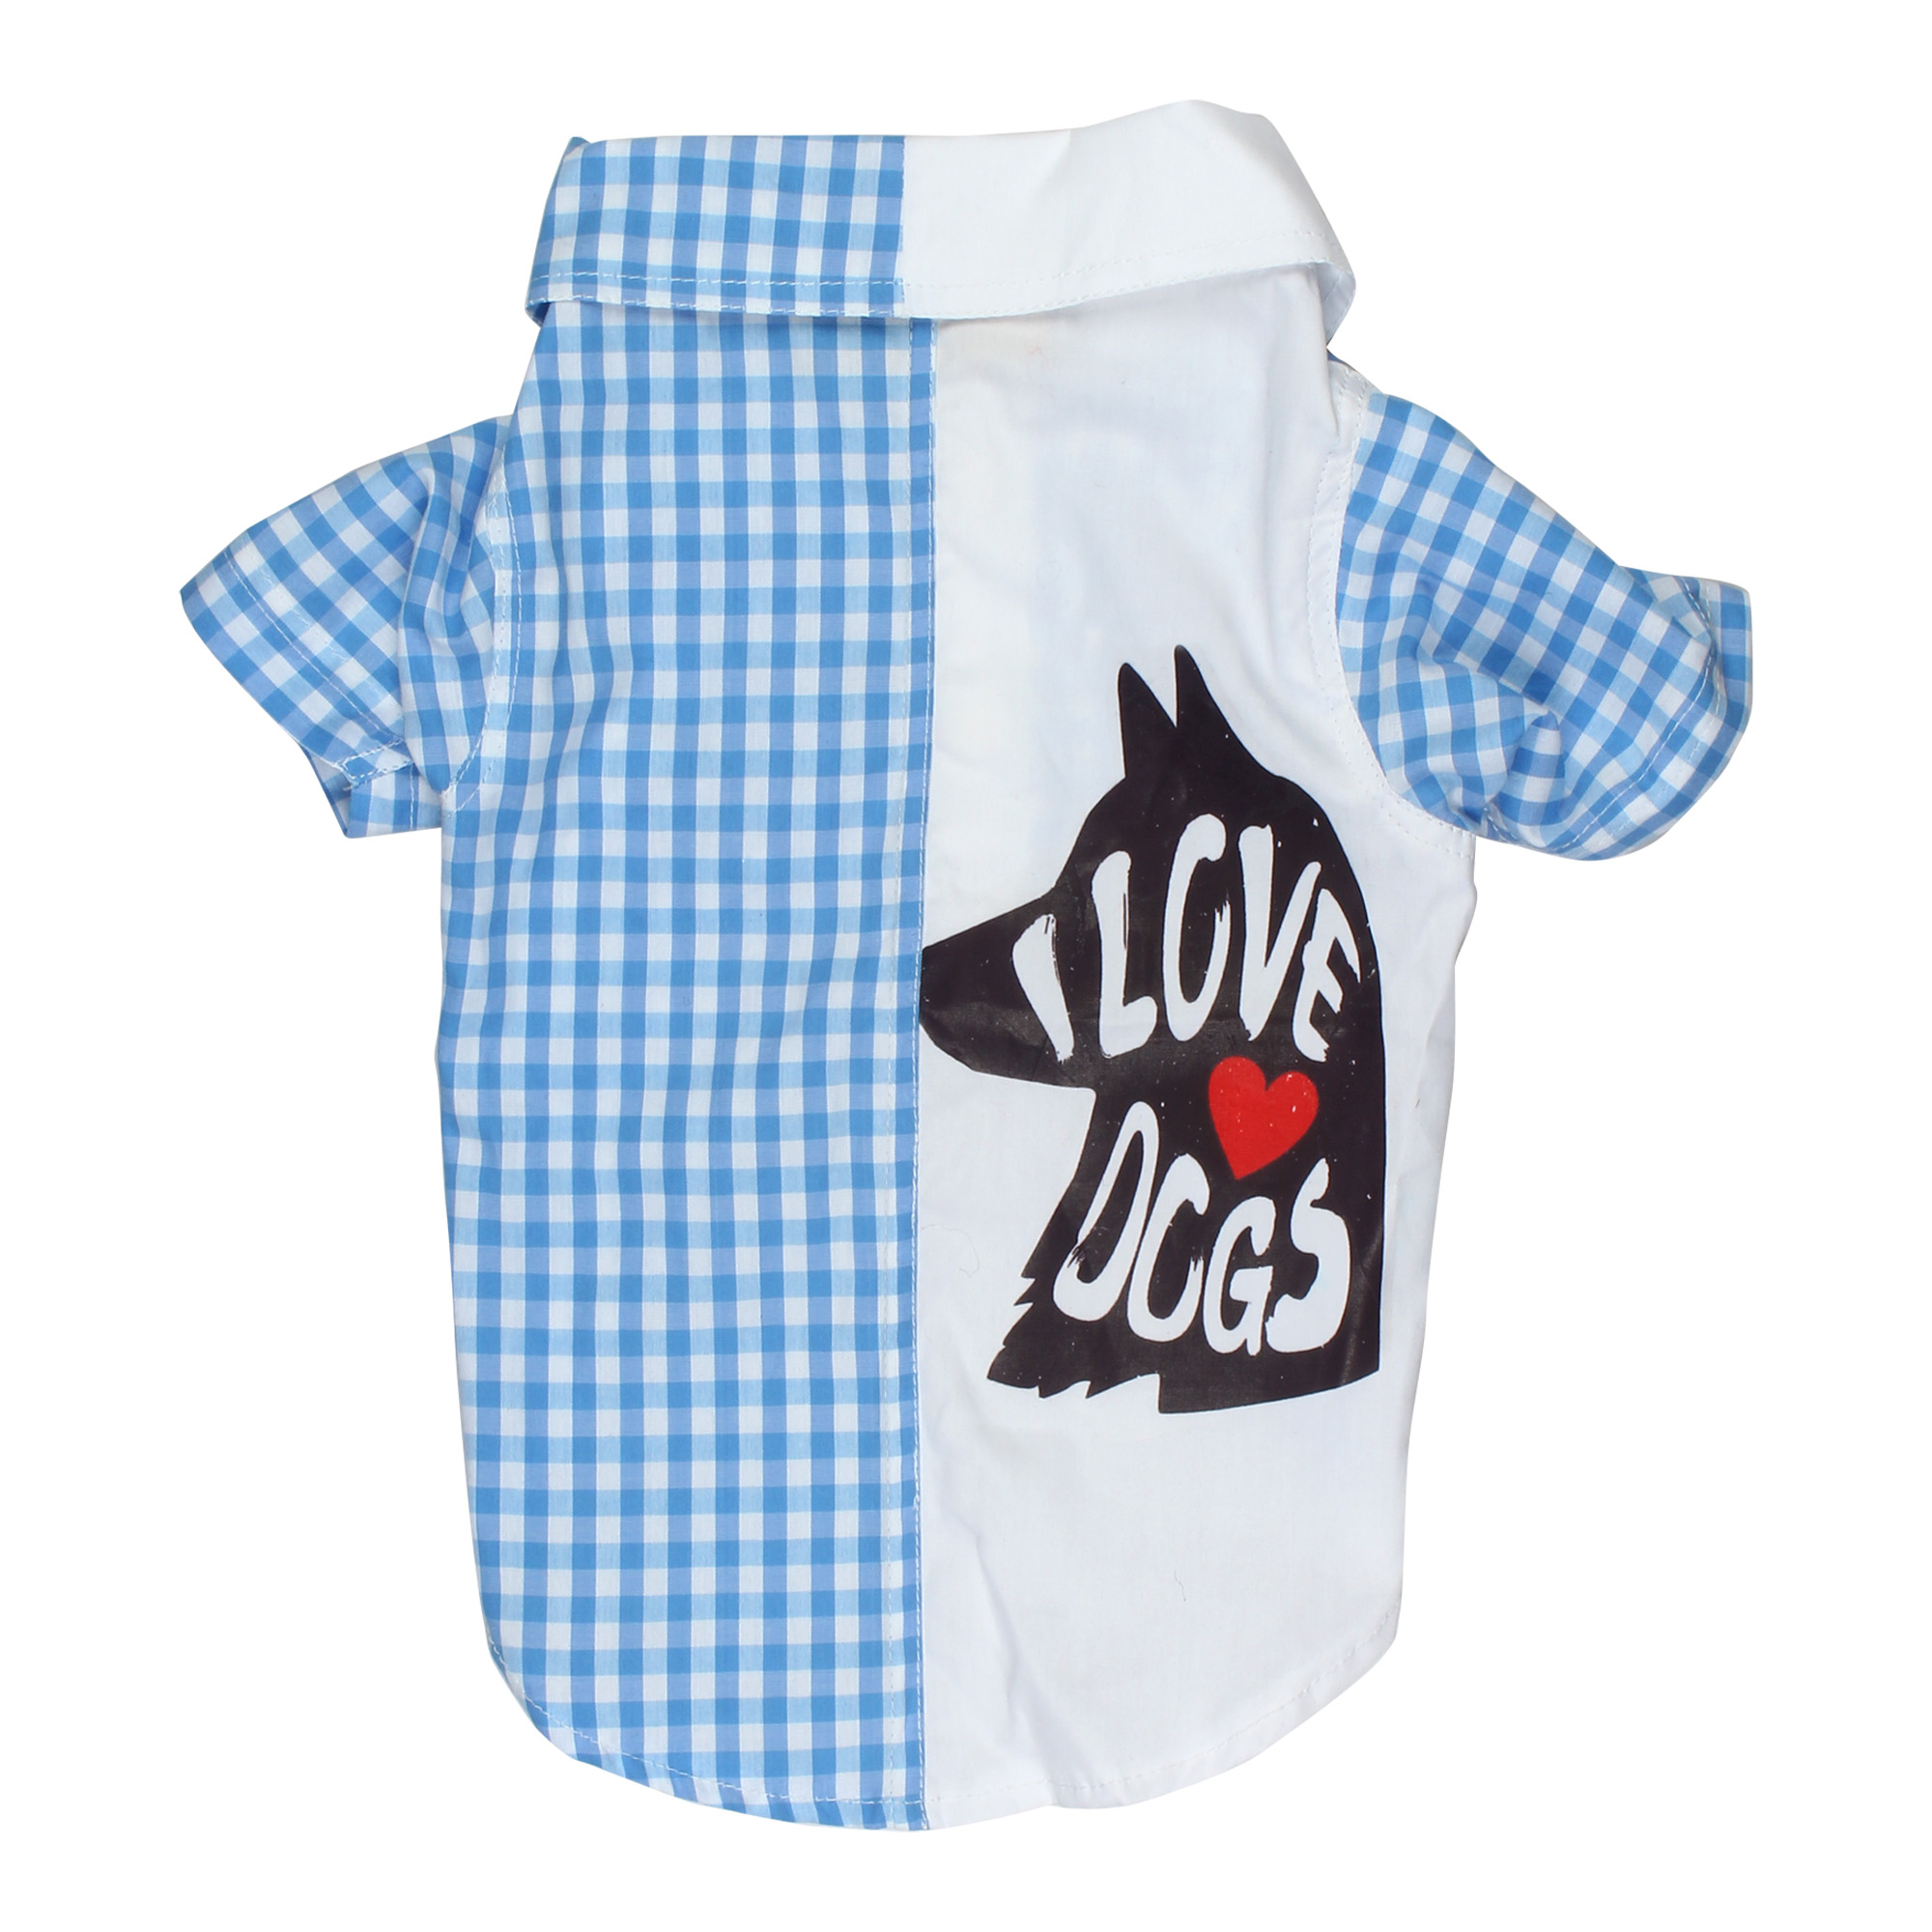 Douge Couture smart white blue check shirt